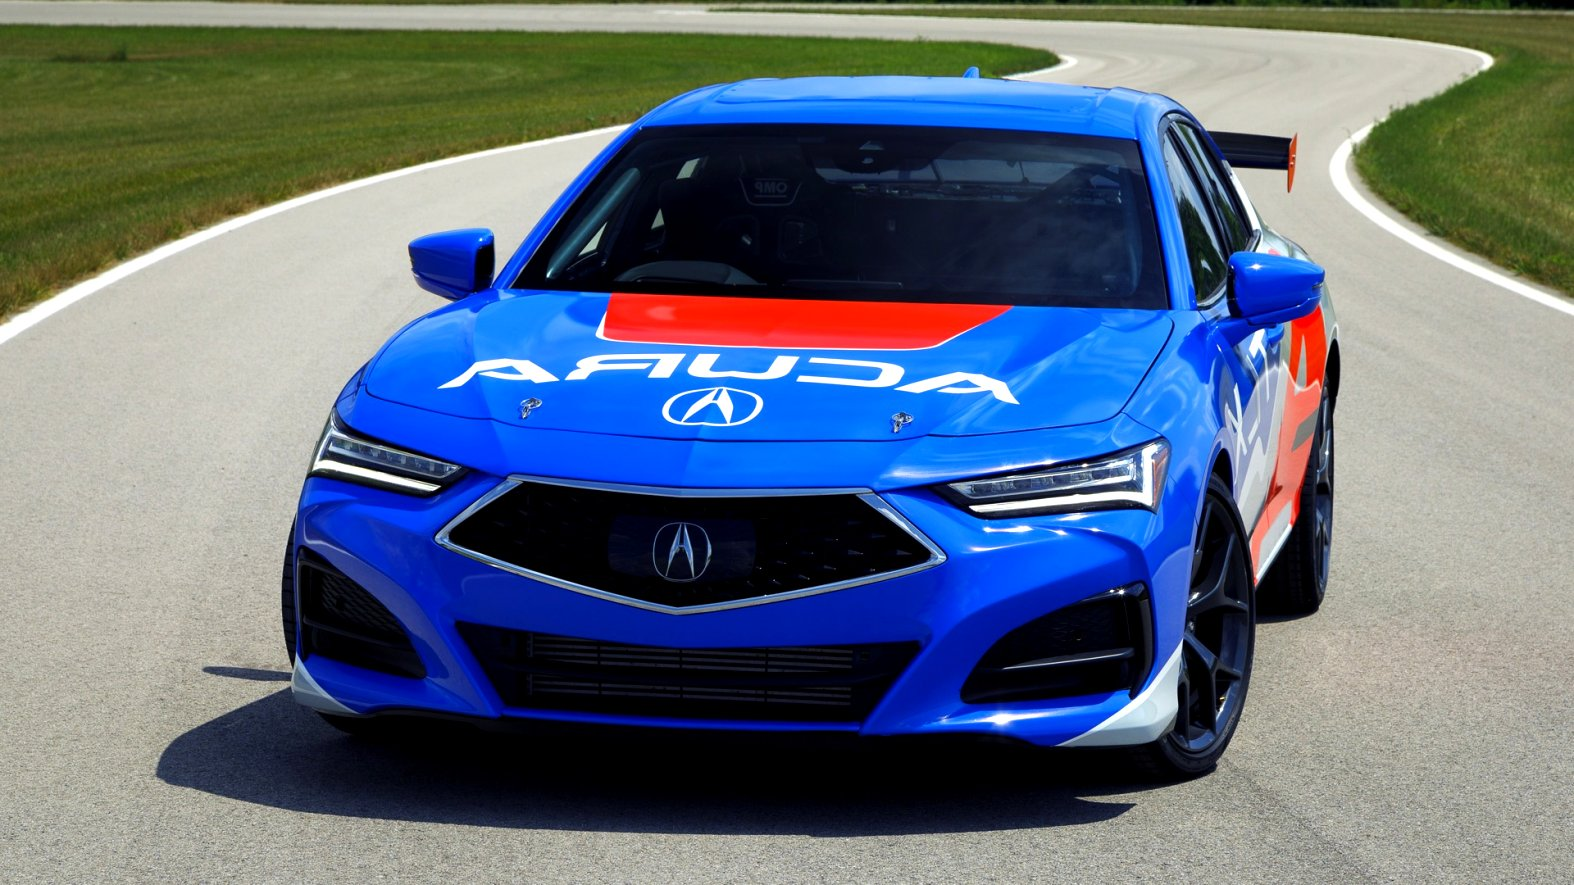 acura pikes peak 2020 Price and Review